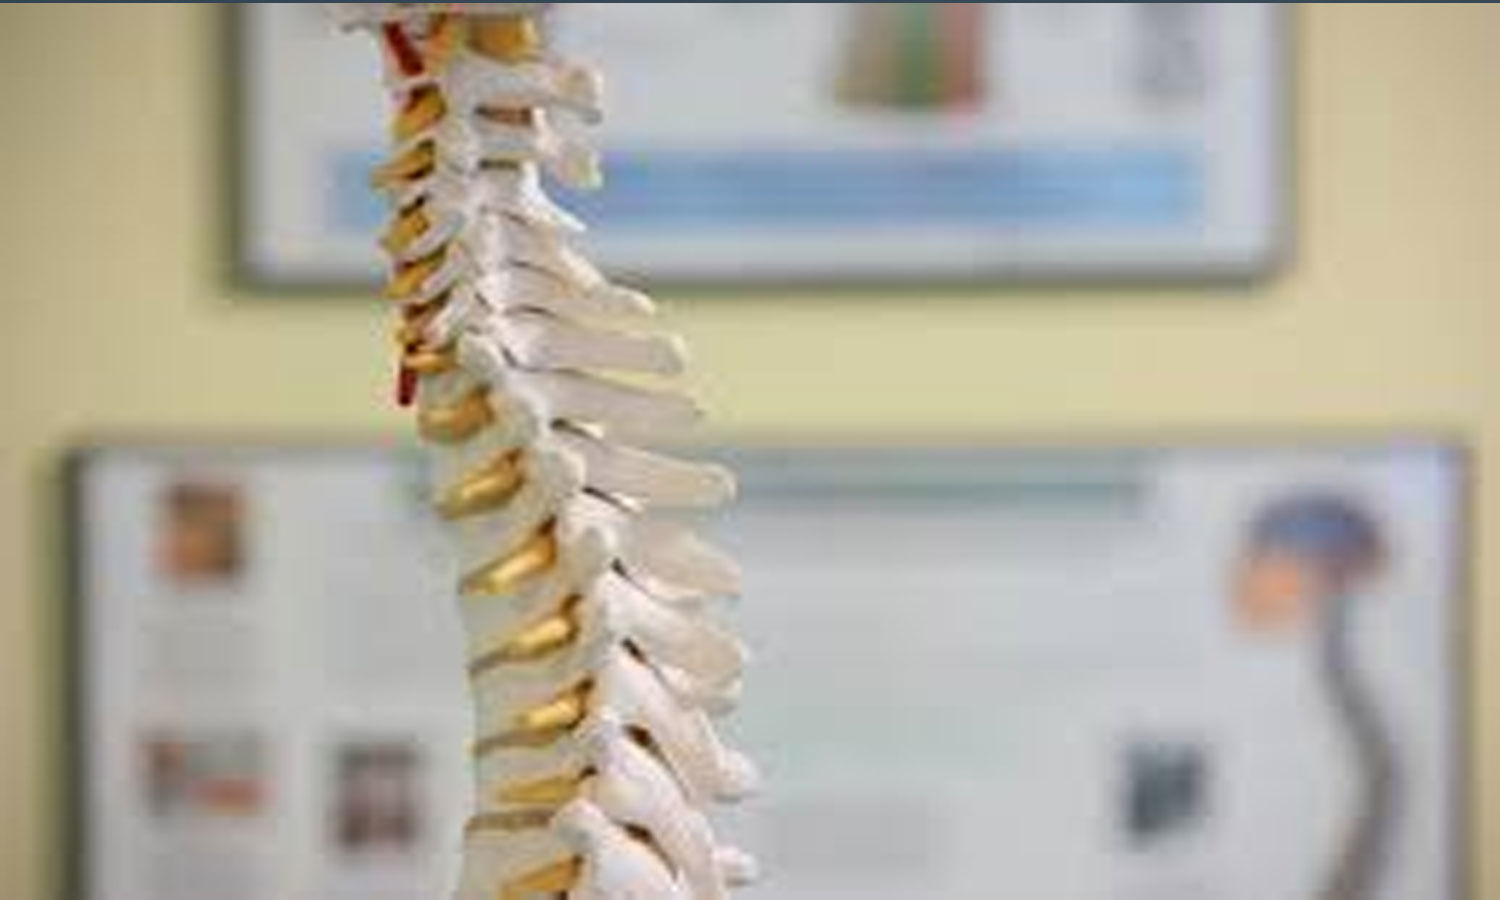 Researchers develop new two-step technique to heal herniated disc